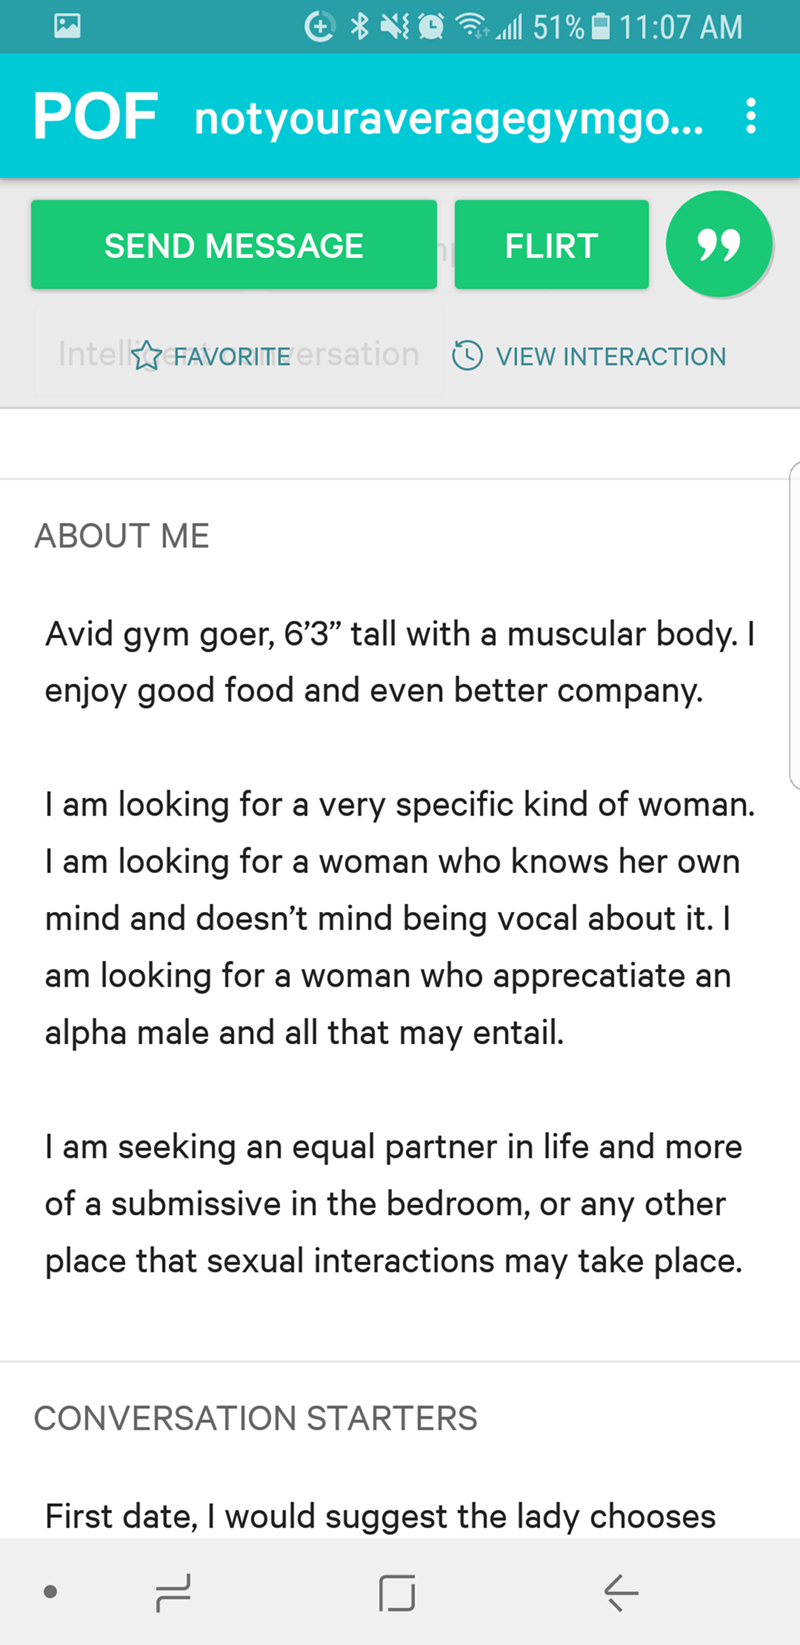 "Text - 51% 11:07 AM POF notyouraveragegymgo... : 99 SEND MESSAGE FLIRT IntelFAVORITE ersation VIEW INTERACTION ABOUT ME Avid gym goer, 6'3"" tall witha muscular body. I enjoy good food and even better company. I am looking for a very specific kind of woman. I am looking for a woman who knows her own mind and doesn't mind being vocal about it. I am looking for a woman who apprecatiate an alpha male and all that may entail. I am seeking an equal partner in life and more of a submissive in the bedro"